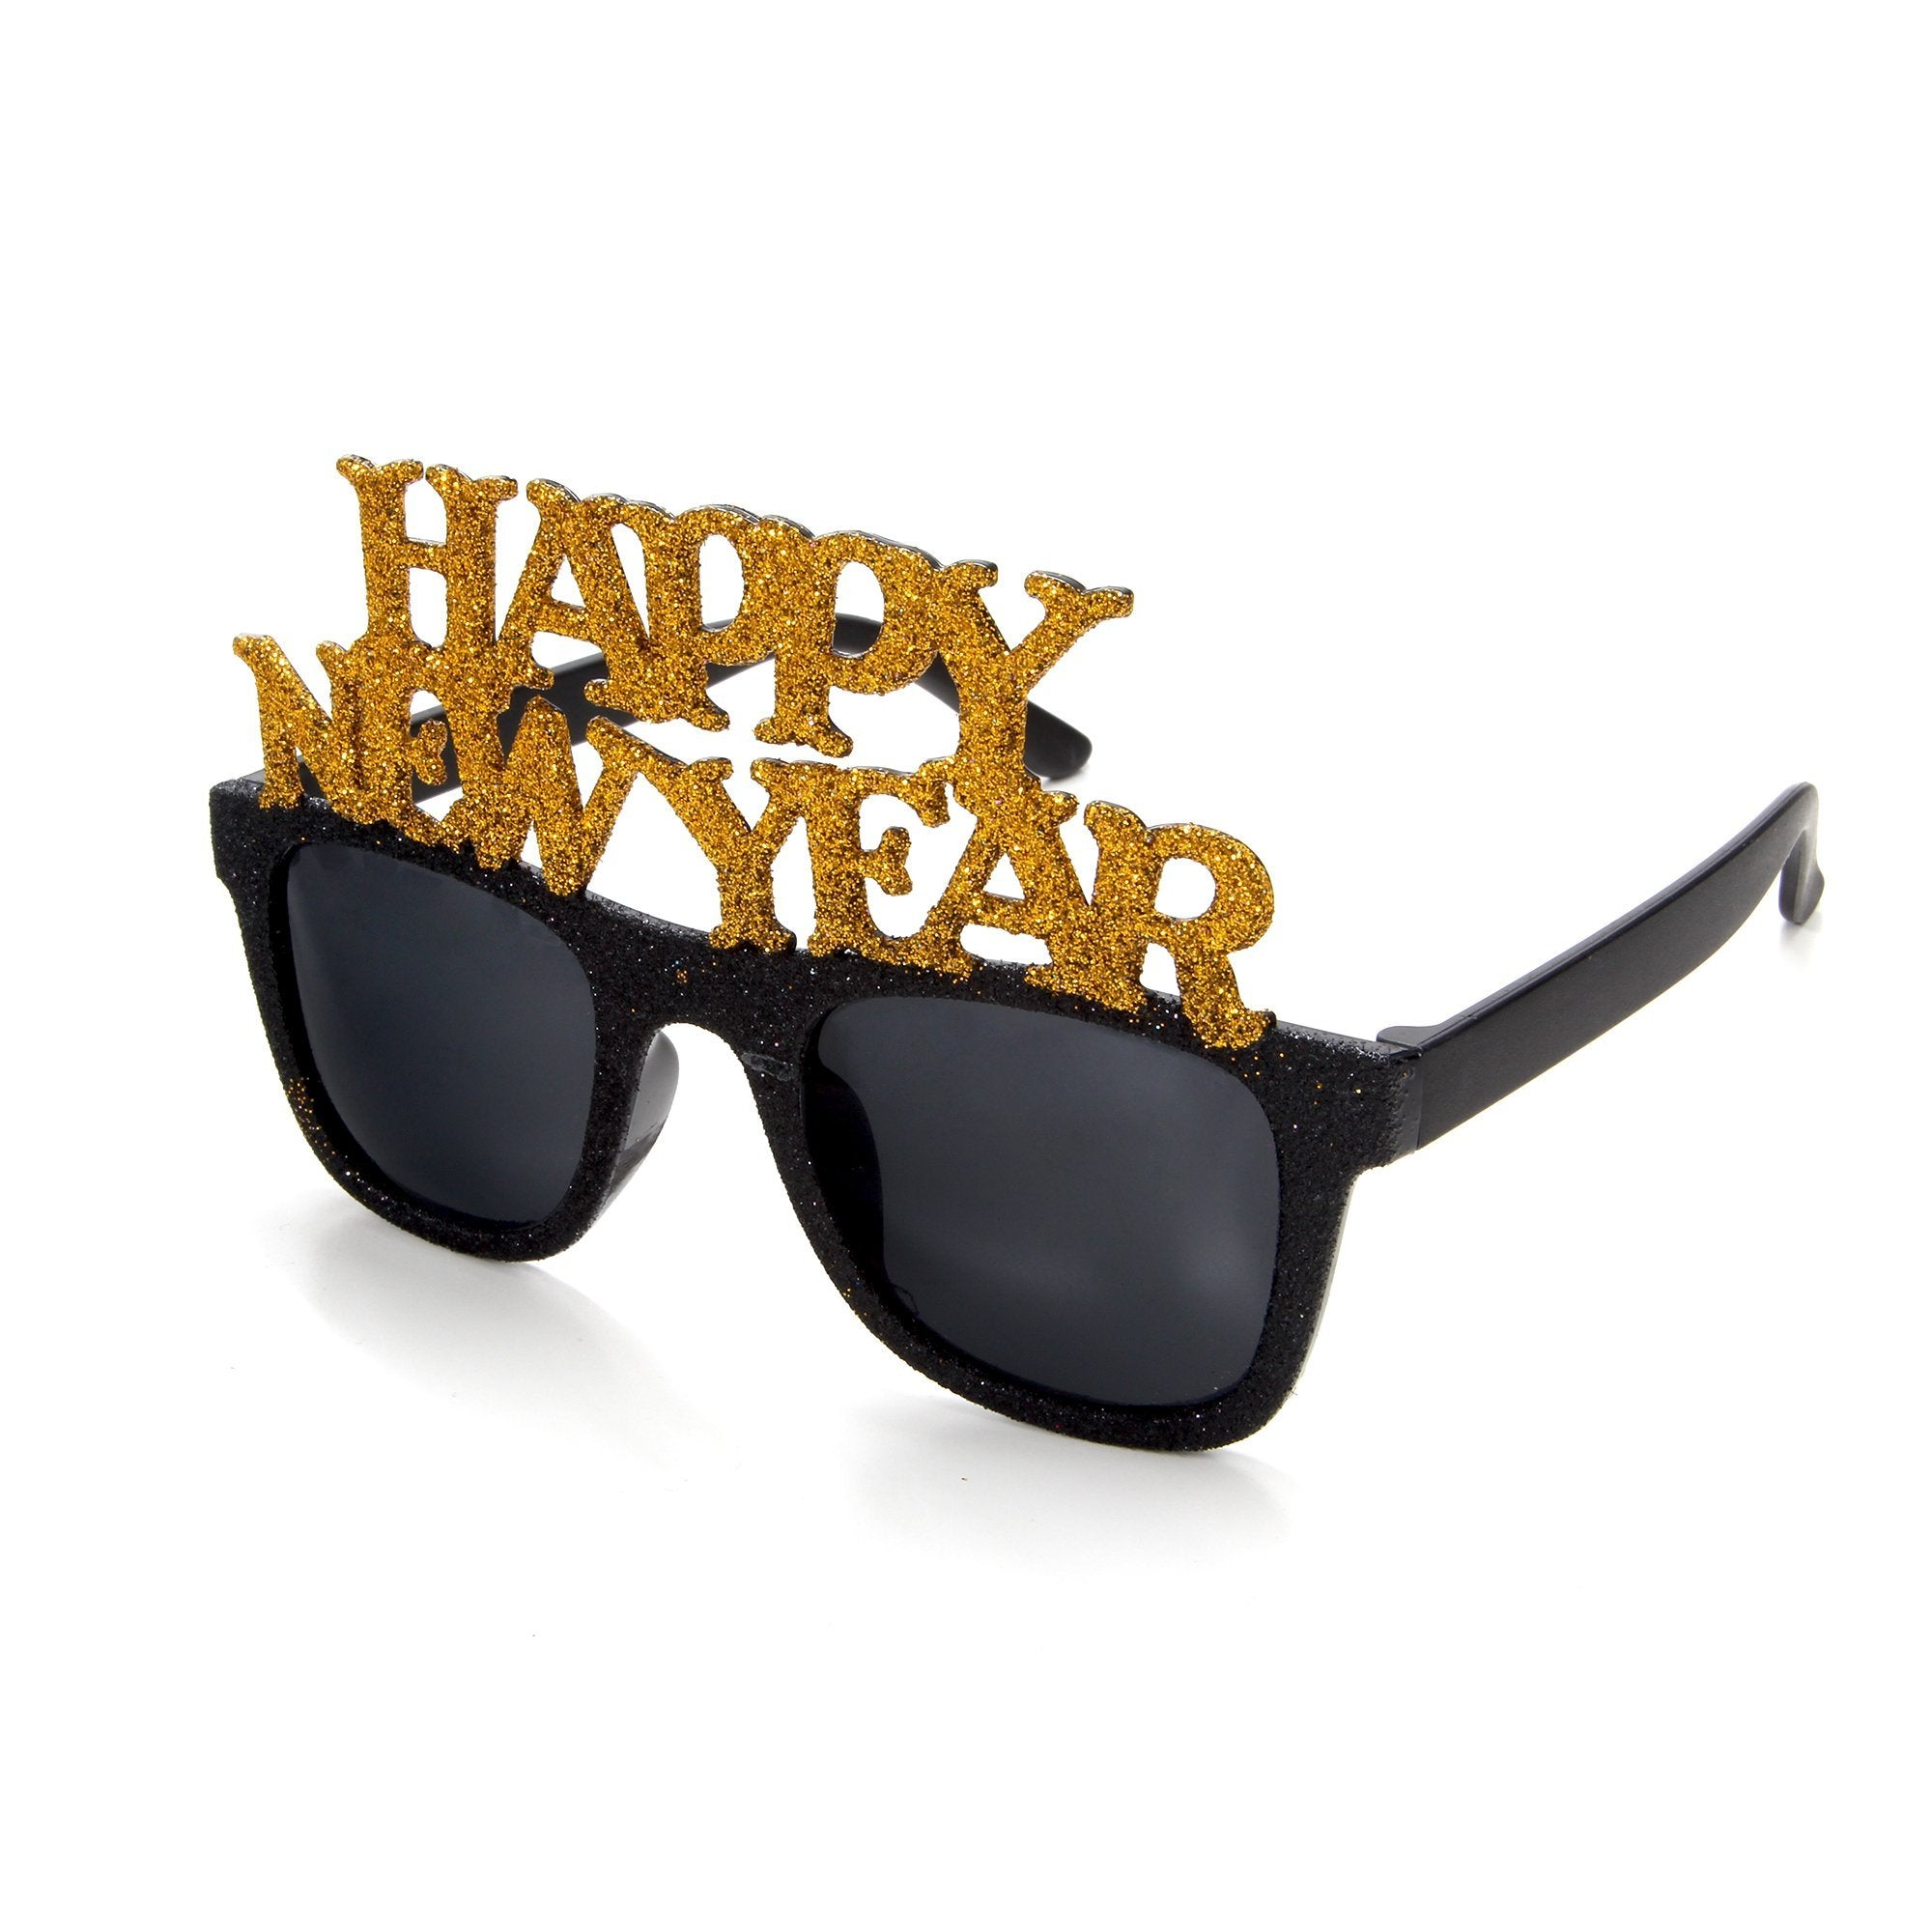 2021-NEW Novelty Happy New Year Promotional Glitter Sunglasses